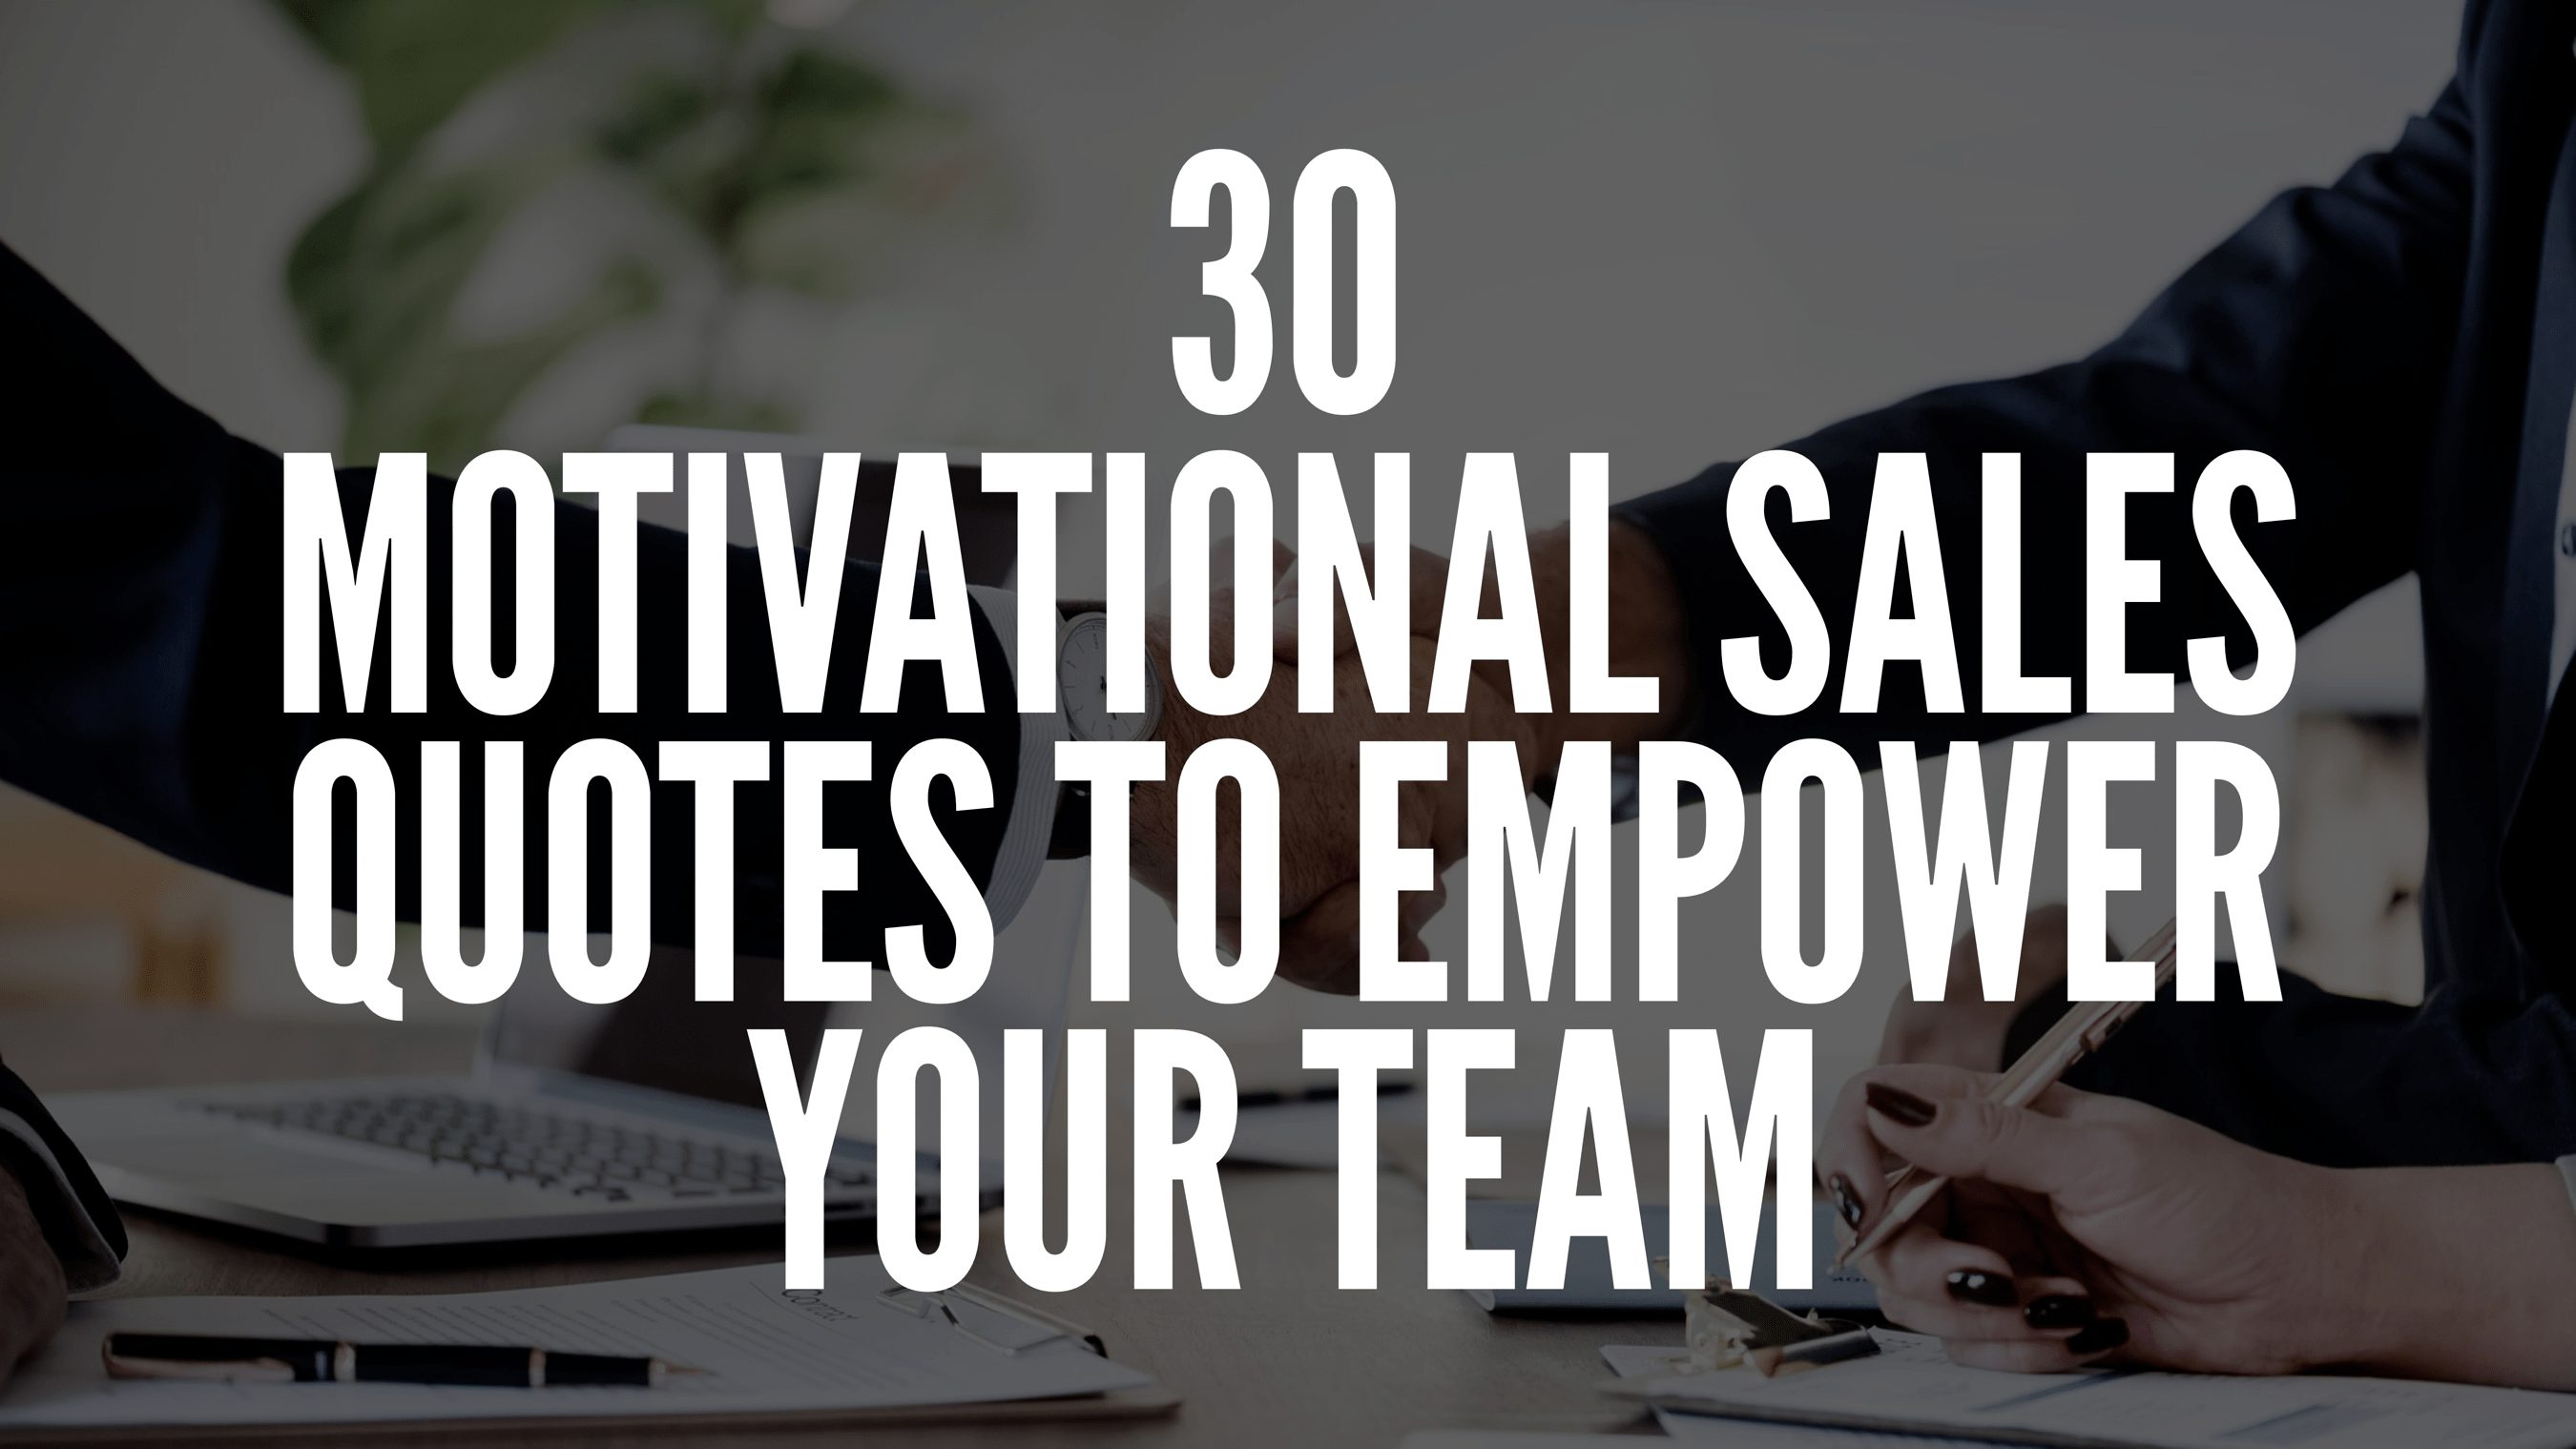 30 Motivational Sales Quotes To Empower Your Team